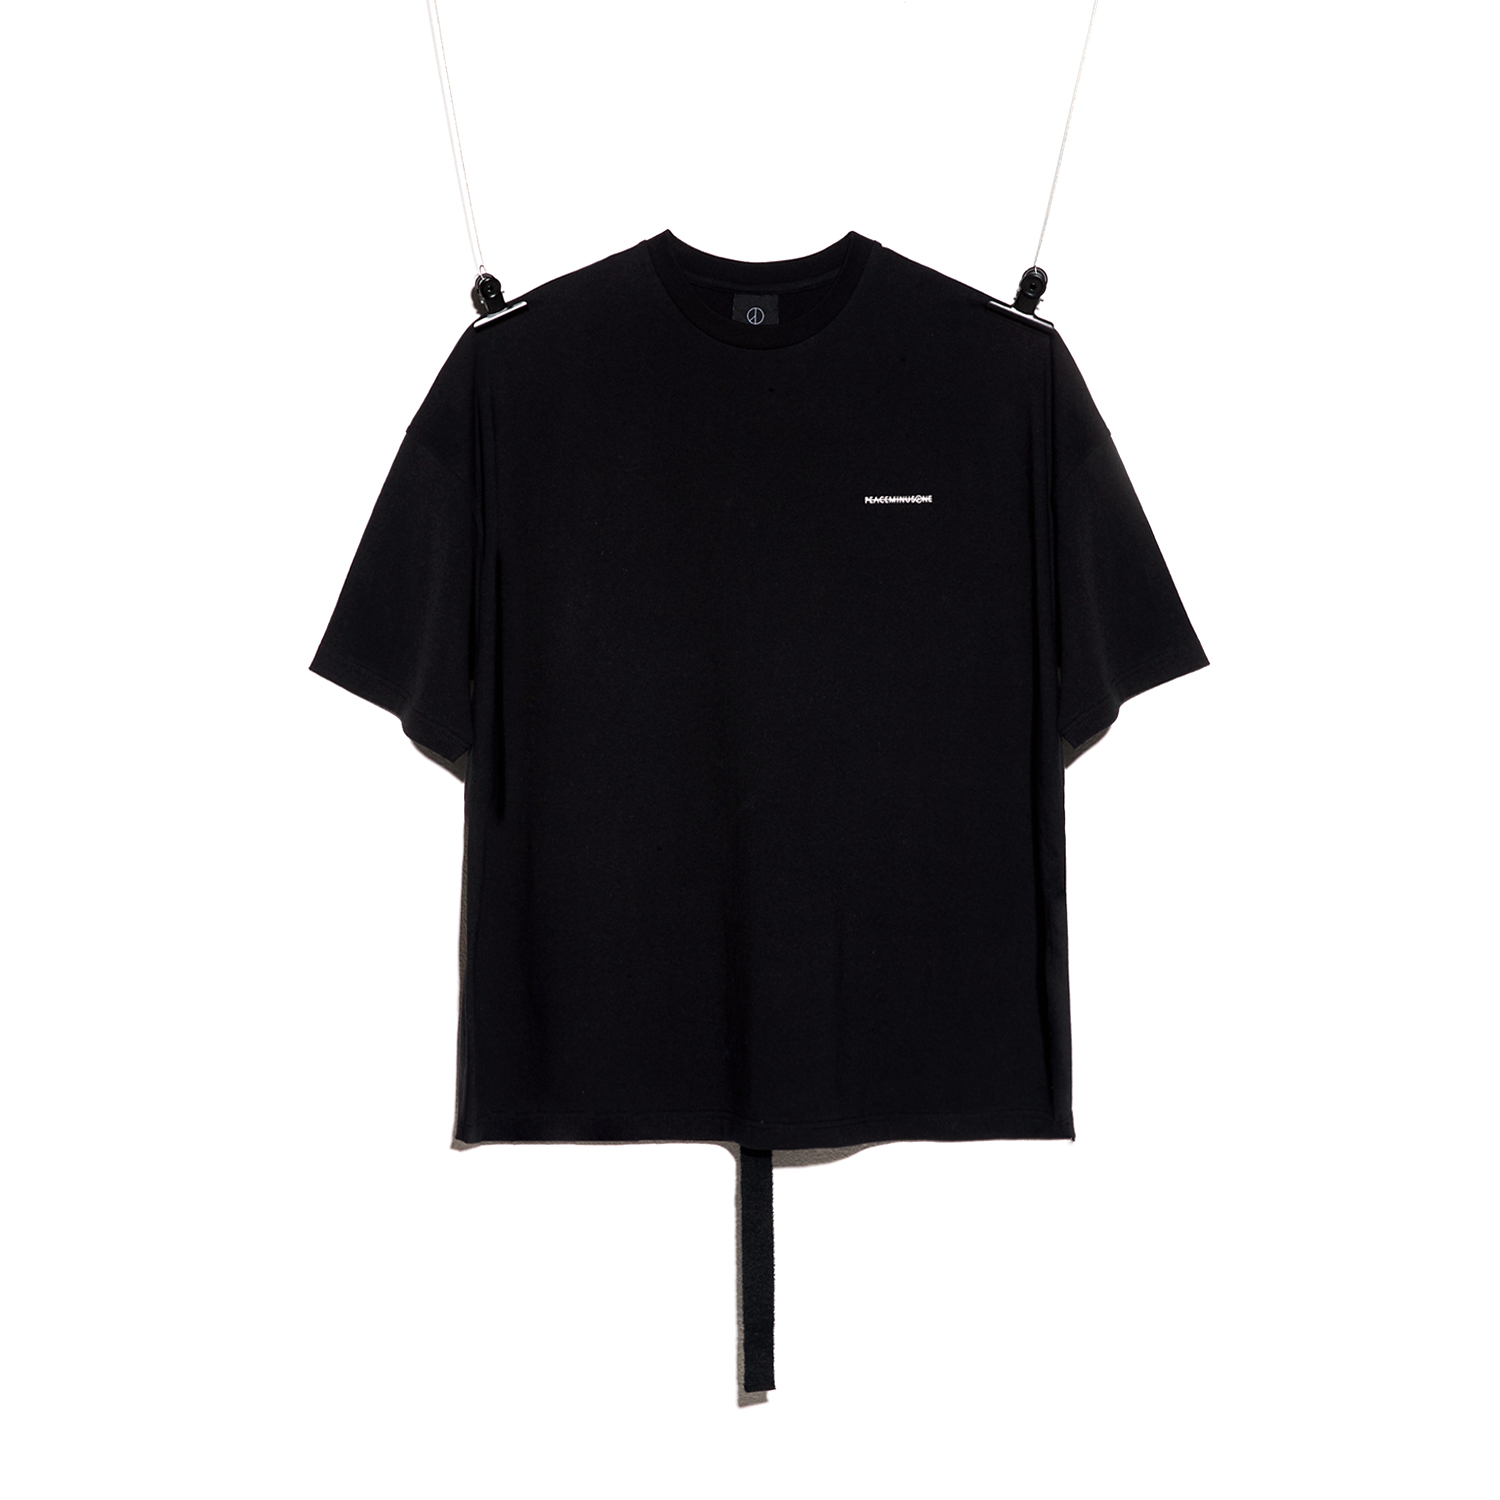 PEACEMINUSONE X FRAGMENT DESIGN. T-SHIRT #1